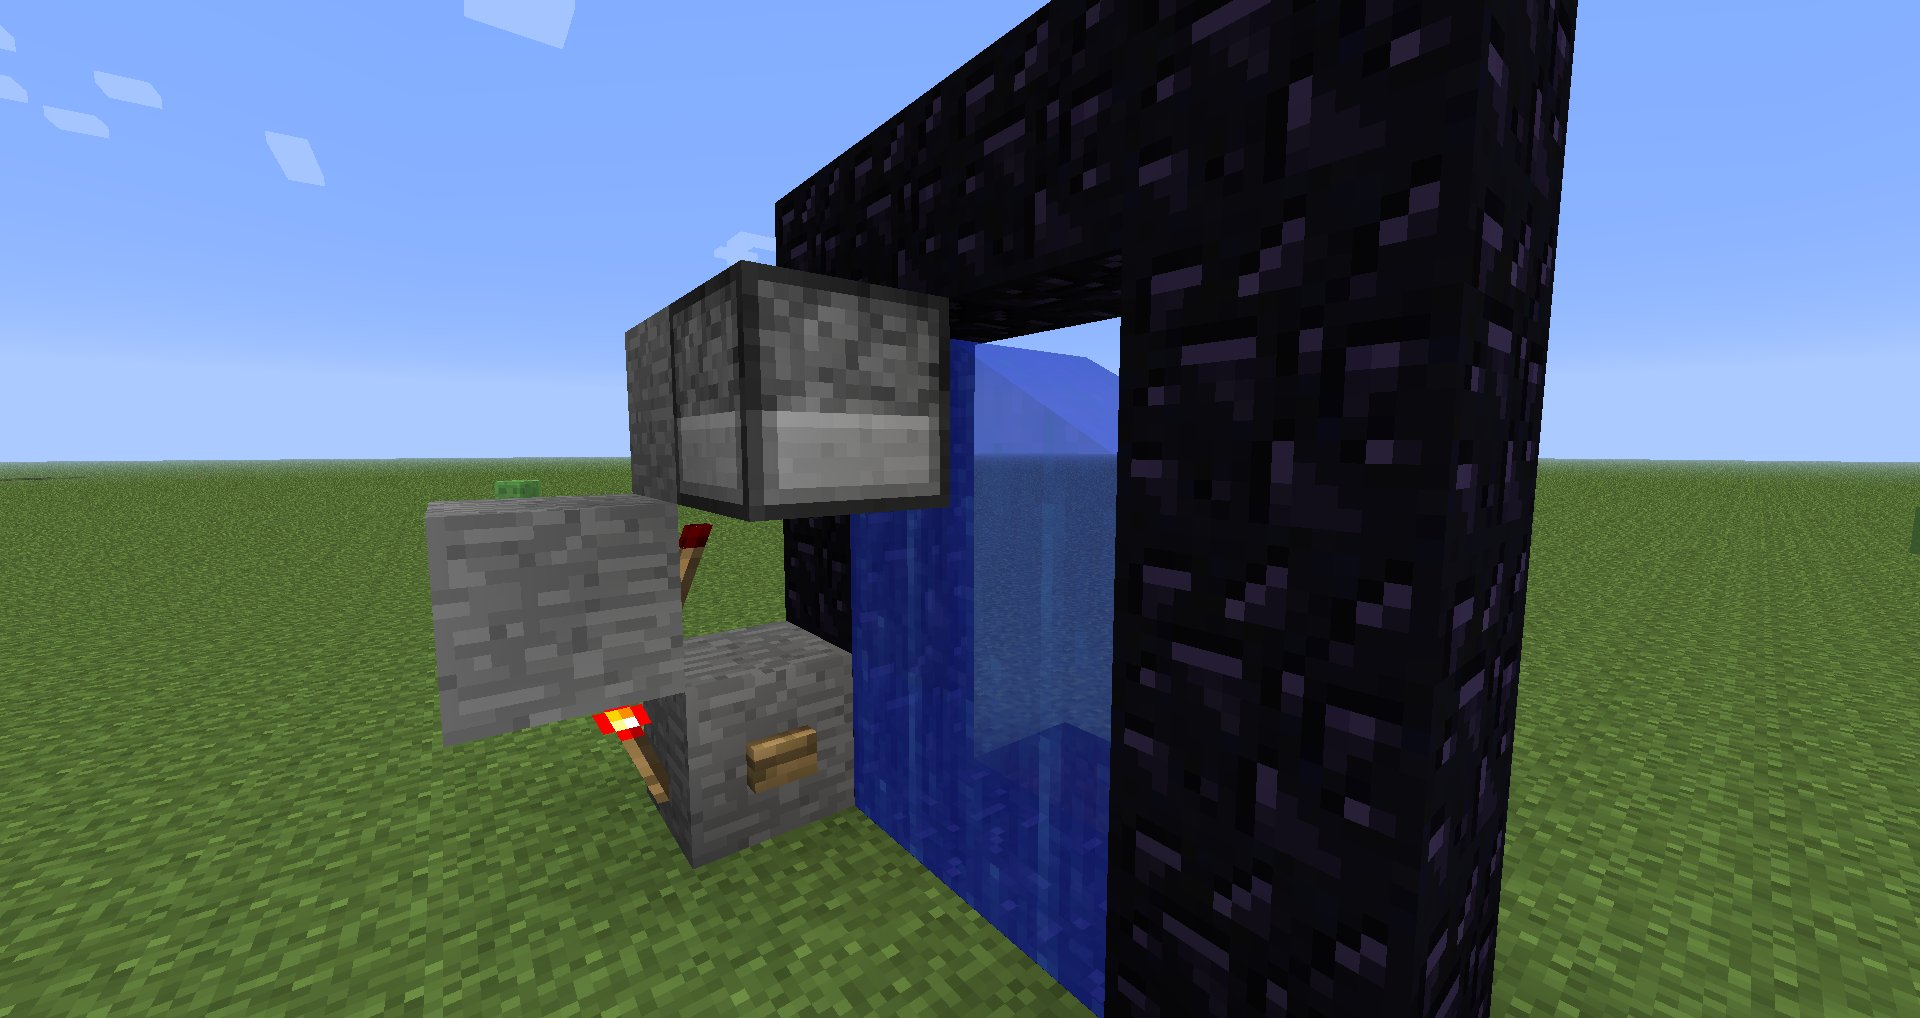 The dispenser has a water block in front of it, filling the portal with flow blocks.